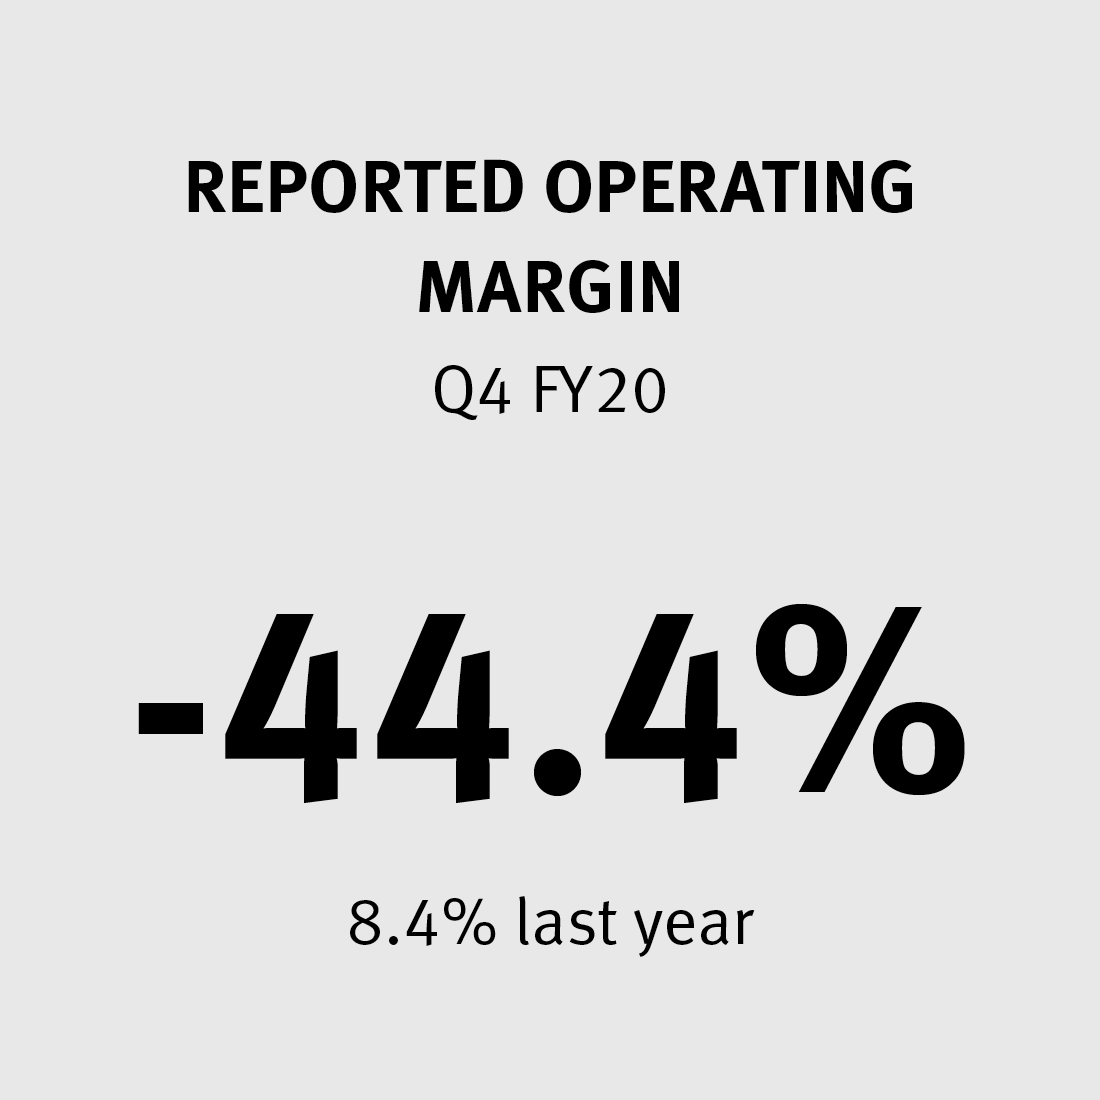 Reported Operating Margin -44.4% (8.4% last year)